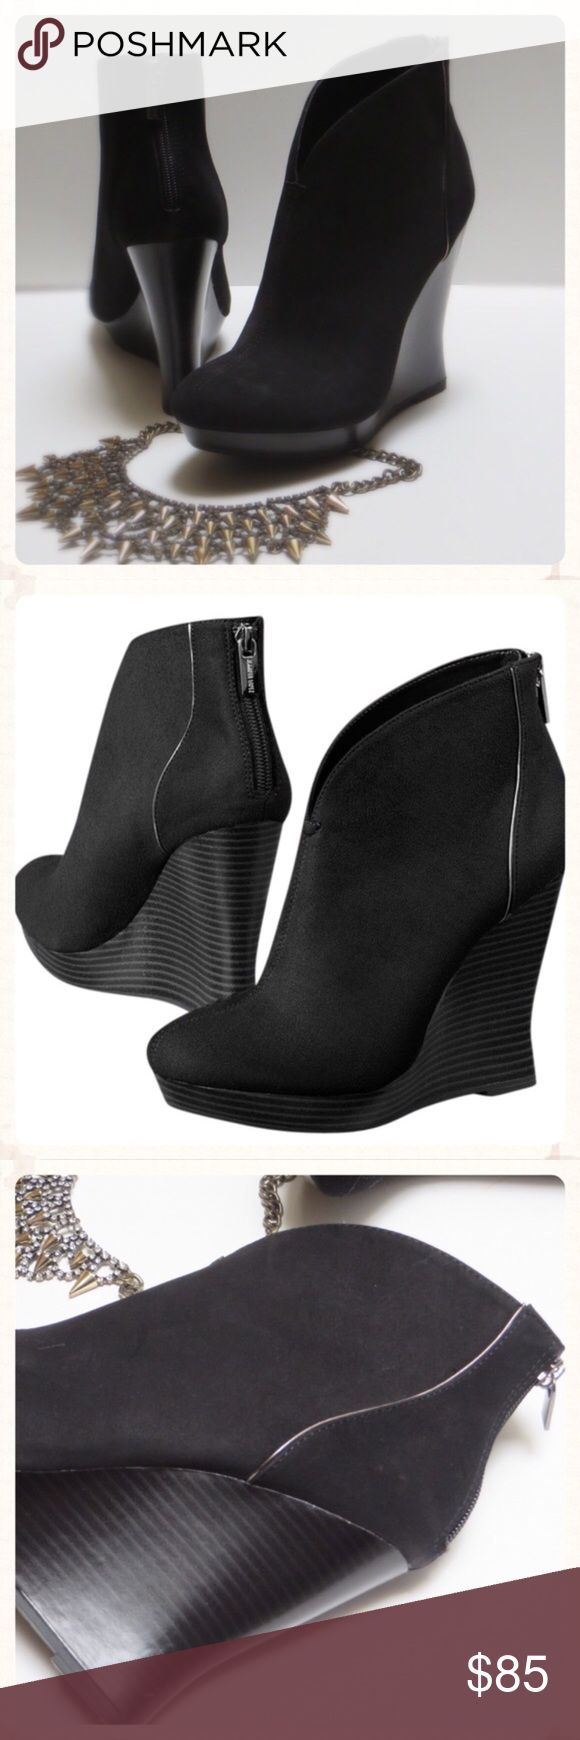 NWOT Jennifer Lopez Black Platform Booties NWOT - Ankle boots. Featuring a tapered collar and metallic trim, these women's booties create striking style. Back zipper lends trendy appeal. Platform wedge heel adds height without compromising stability. Almond toe Zipper closure. Brushed fabric upper Manmade lining Lightly padded footbed TPR/fabric outsold 4 1/4-in heel 3/4 in. NO TRADES Jennifer Lopez Shoes Ankle Boots & Booties